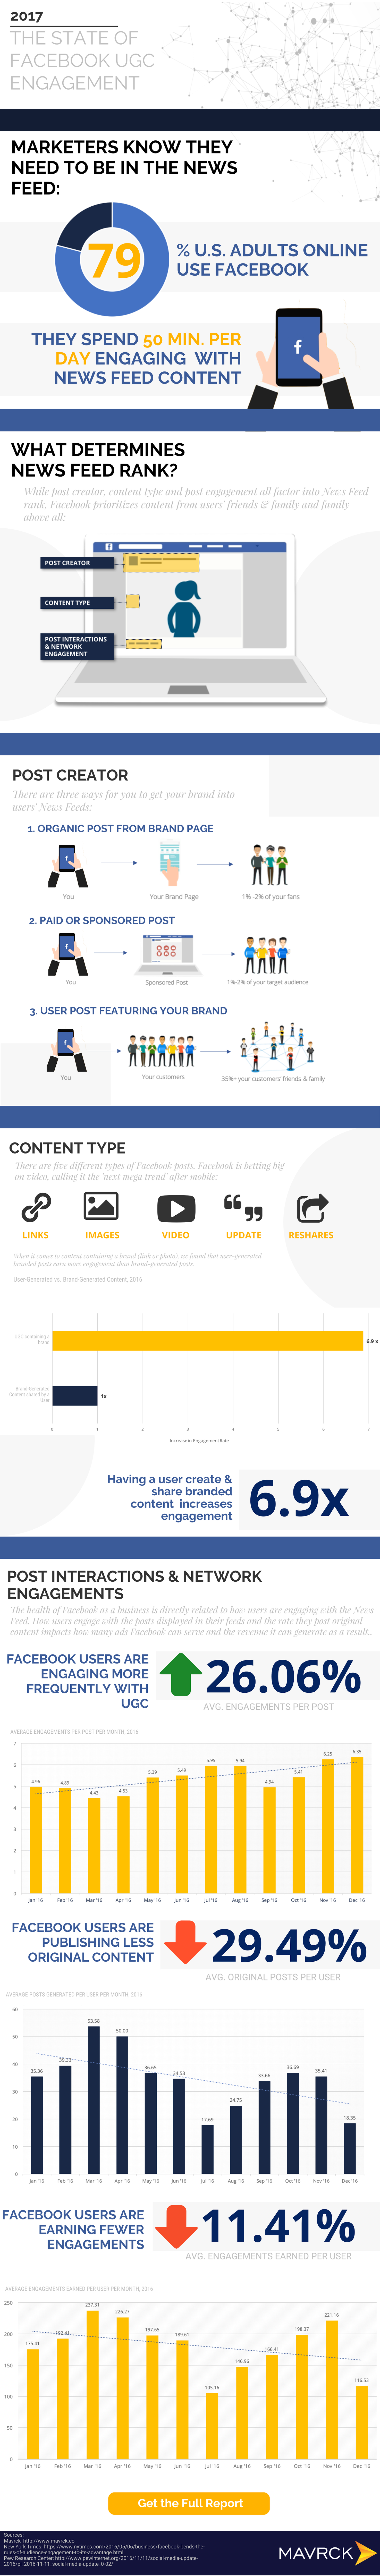 3 Ways UGC Amplifies Brand Engagement on Facebook [Infographic] | Social Media Today